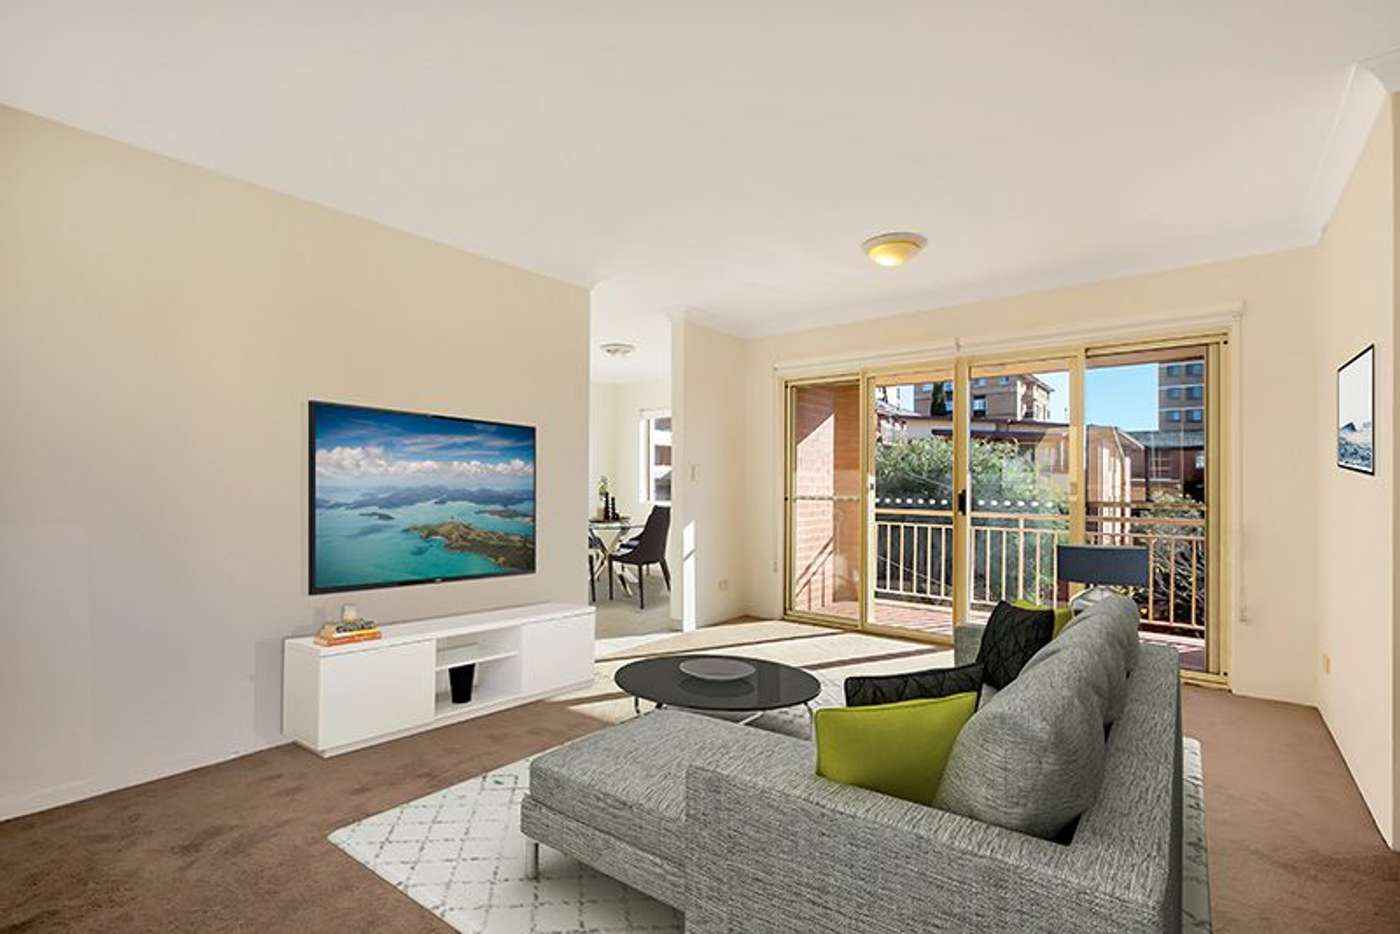 Main view of Homely apartment listing, 6/24 Boronia Street, Kensington NSW 2033